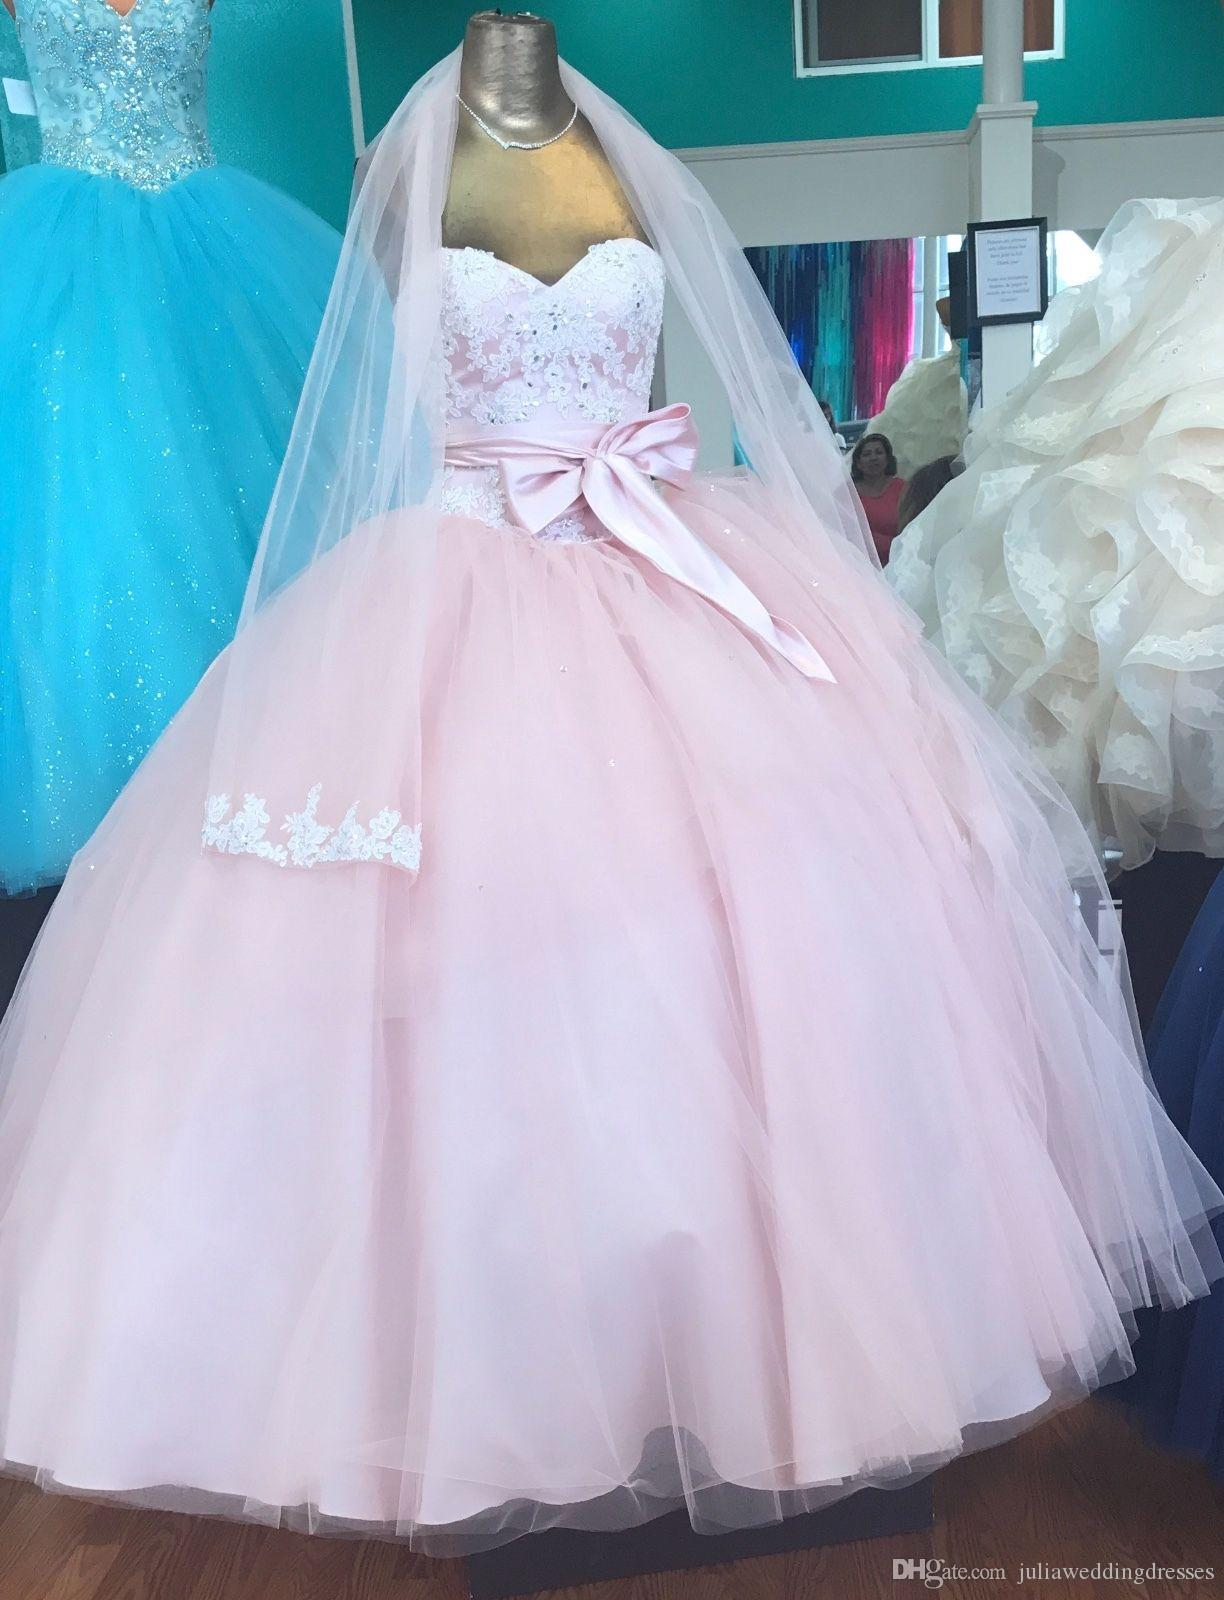 40de7739c4 2019 New Luxury Pink Bow Ball Gown Quinceanera Dresses Crystals For 15  Years Sweet 16 Plus Size Pageant Prom Party Gown QC1055